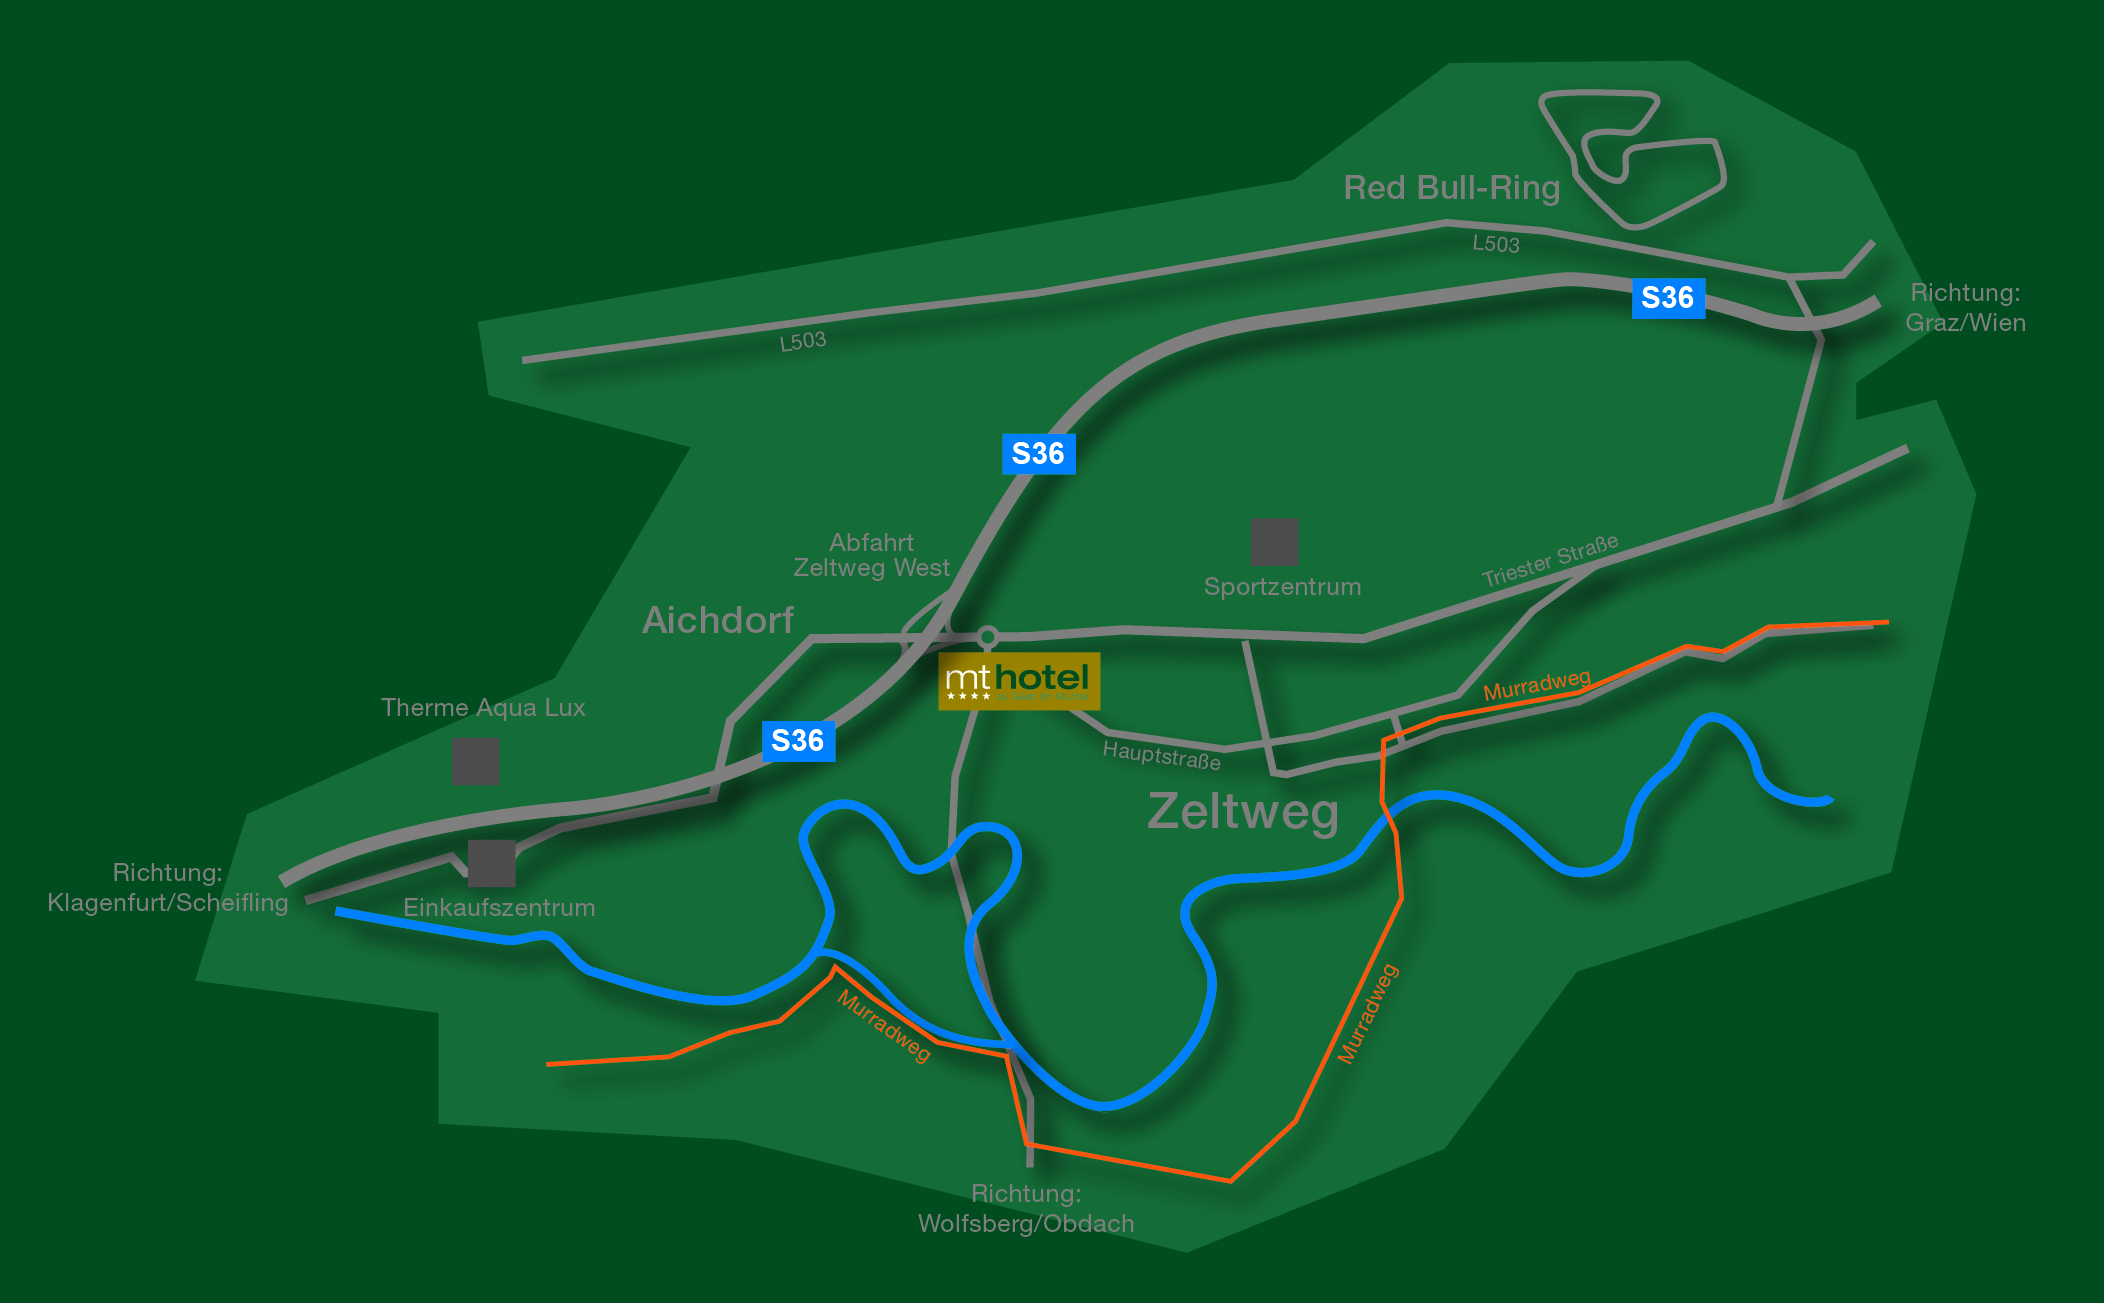 Hotels Nahe Red Bull Ring Spielberg